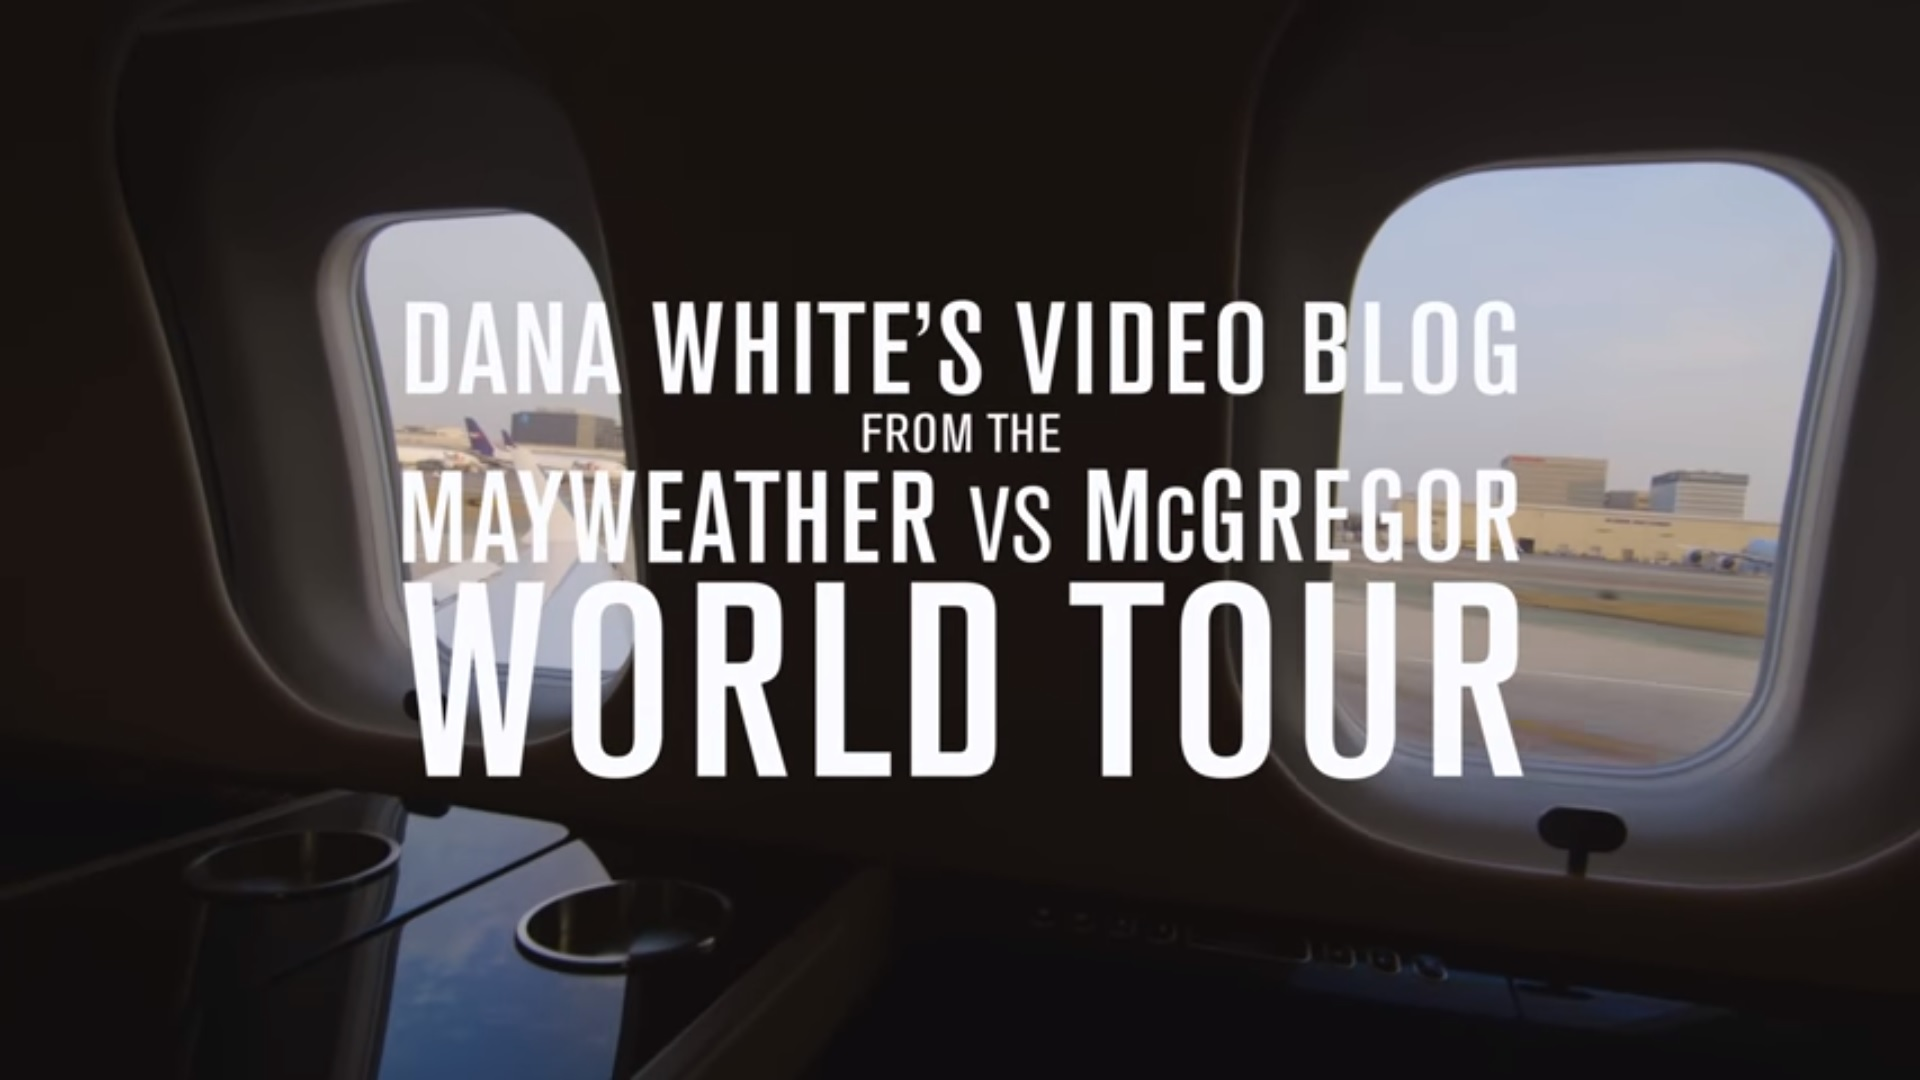 dana video blog for mayweather vs mcgregor